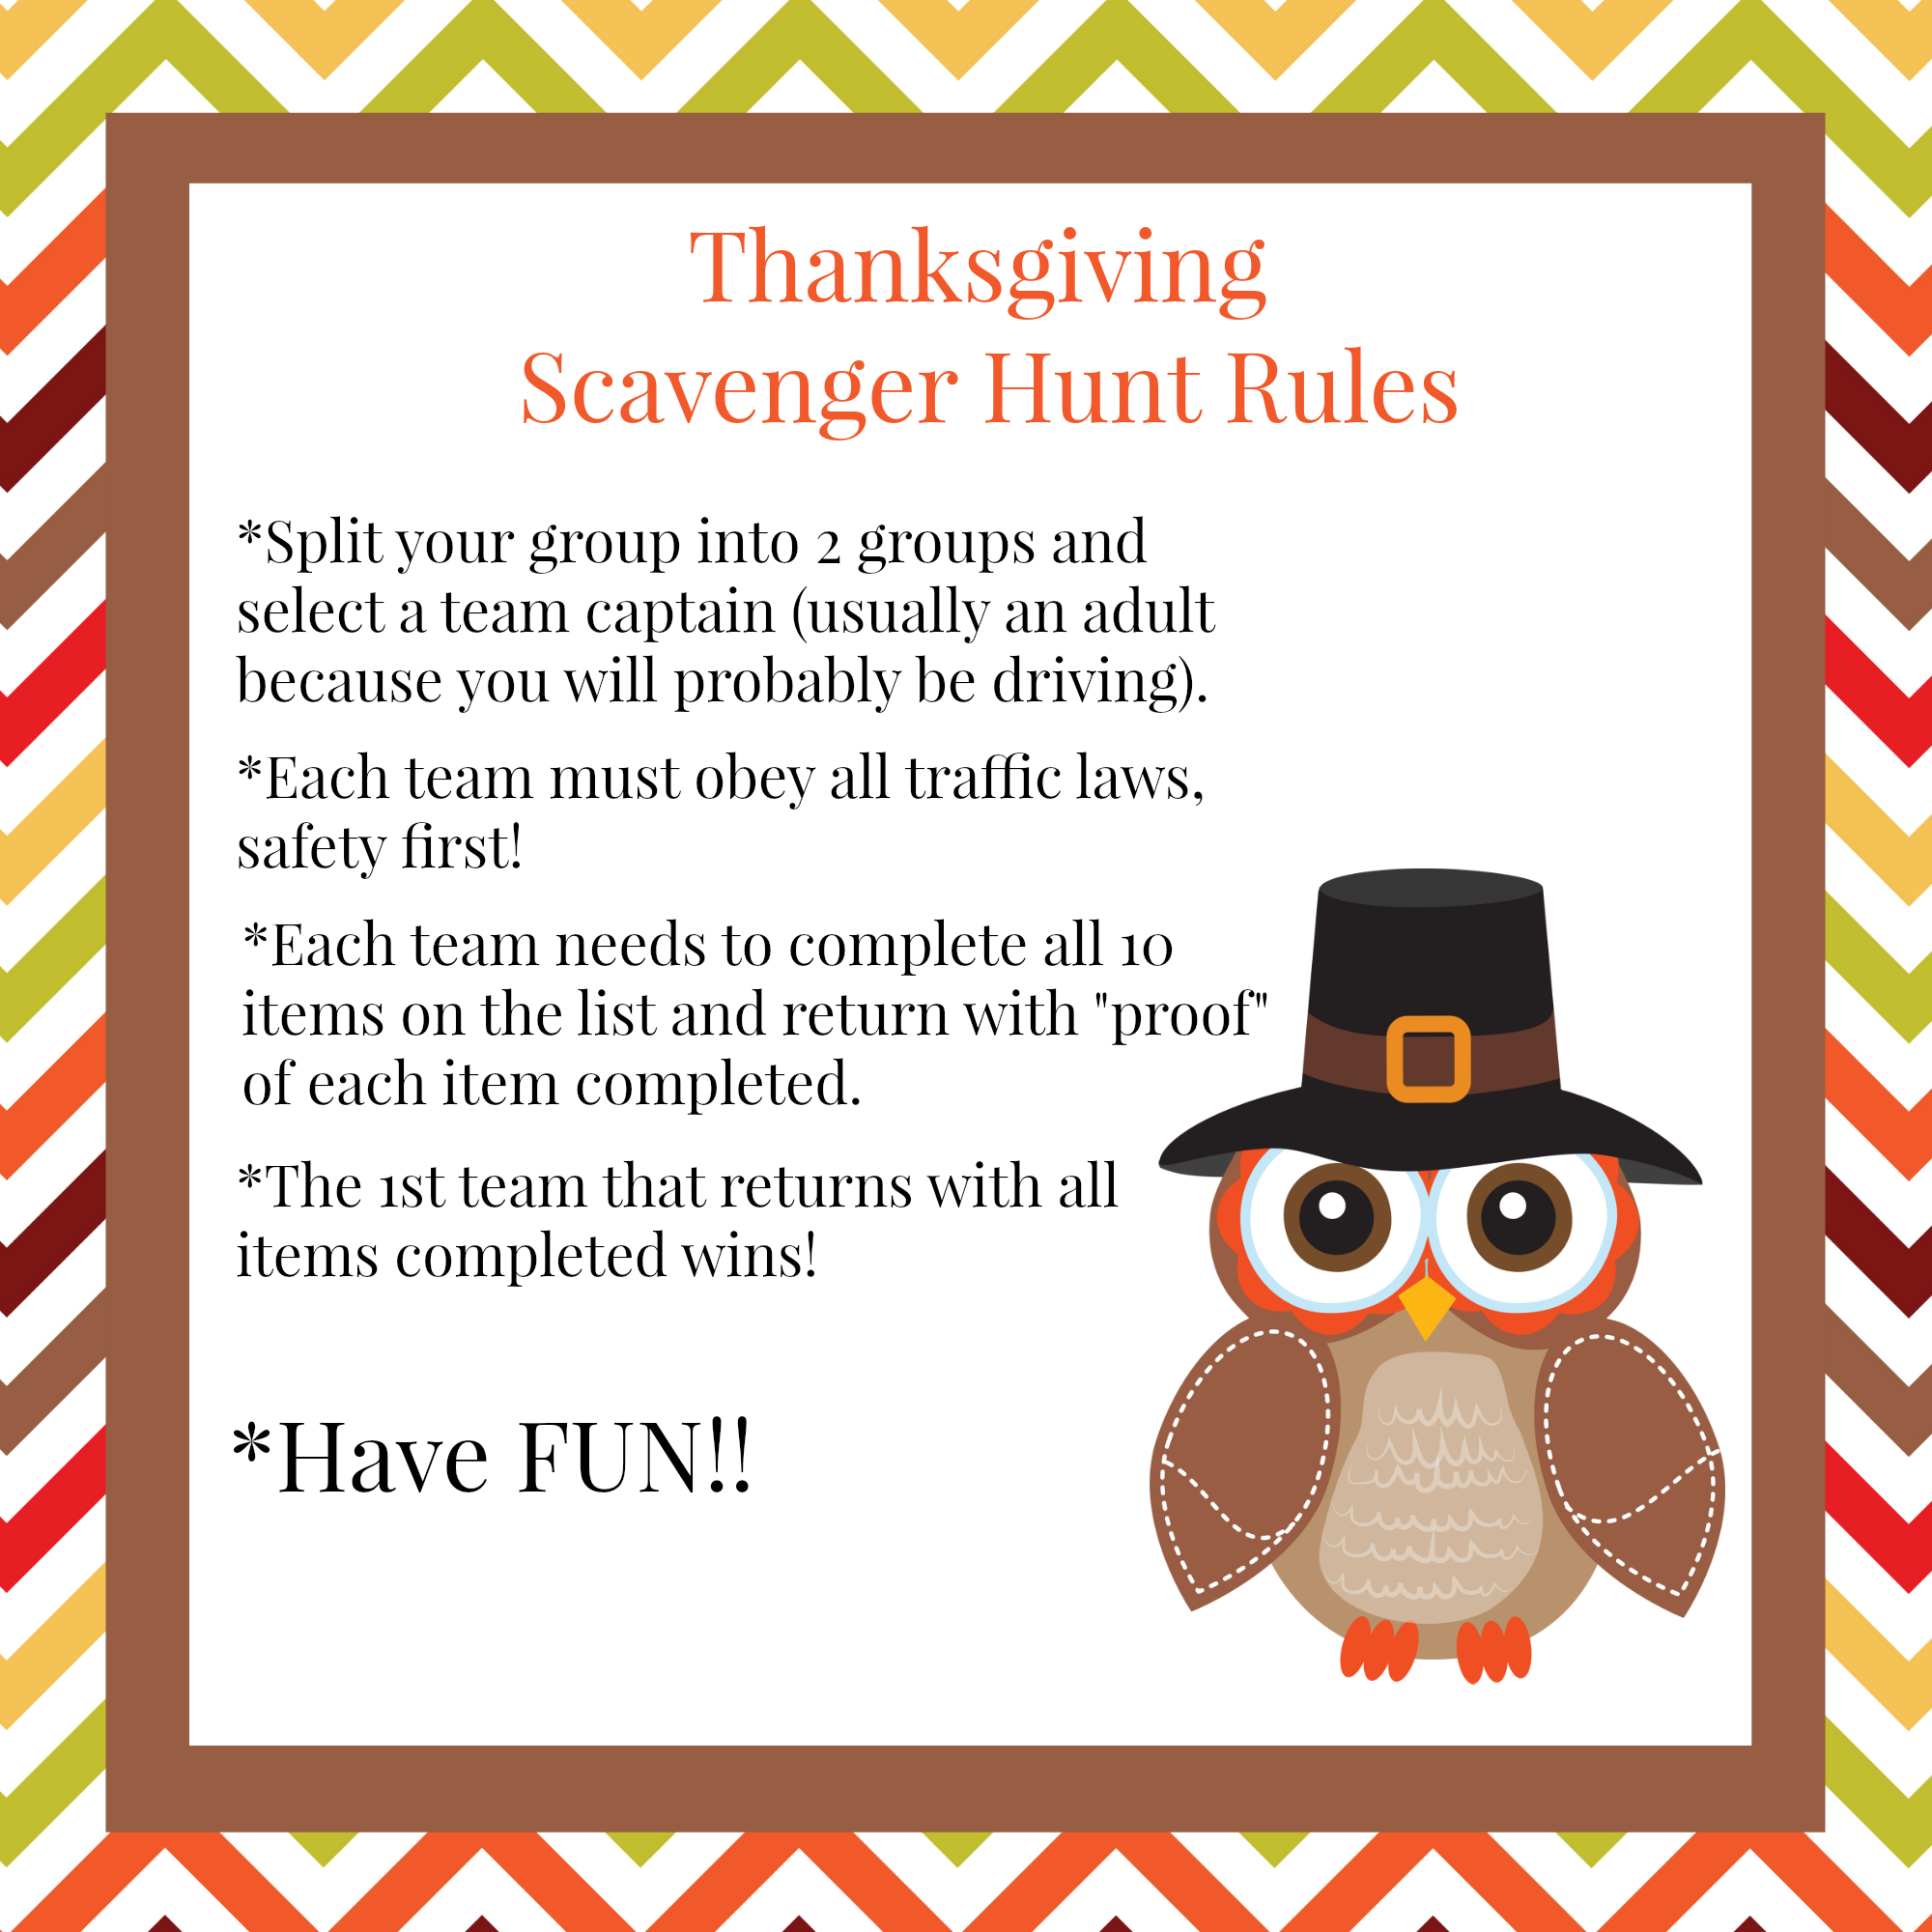 Fun thanksgiving family games scavenger hunt squared